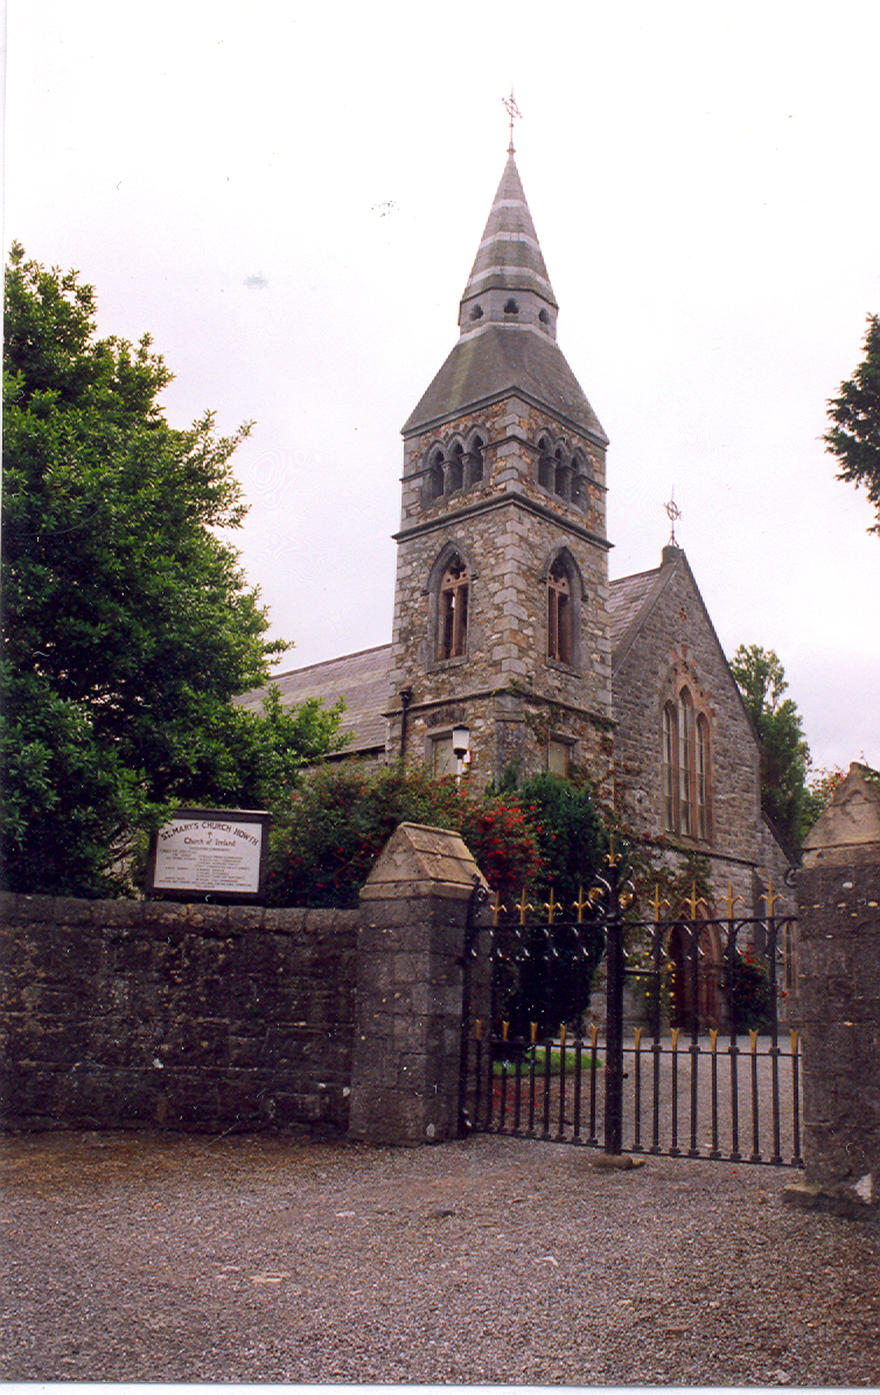 St Mary's Church in the parish of Howth